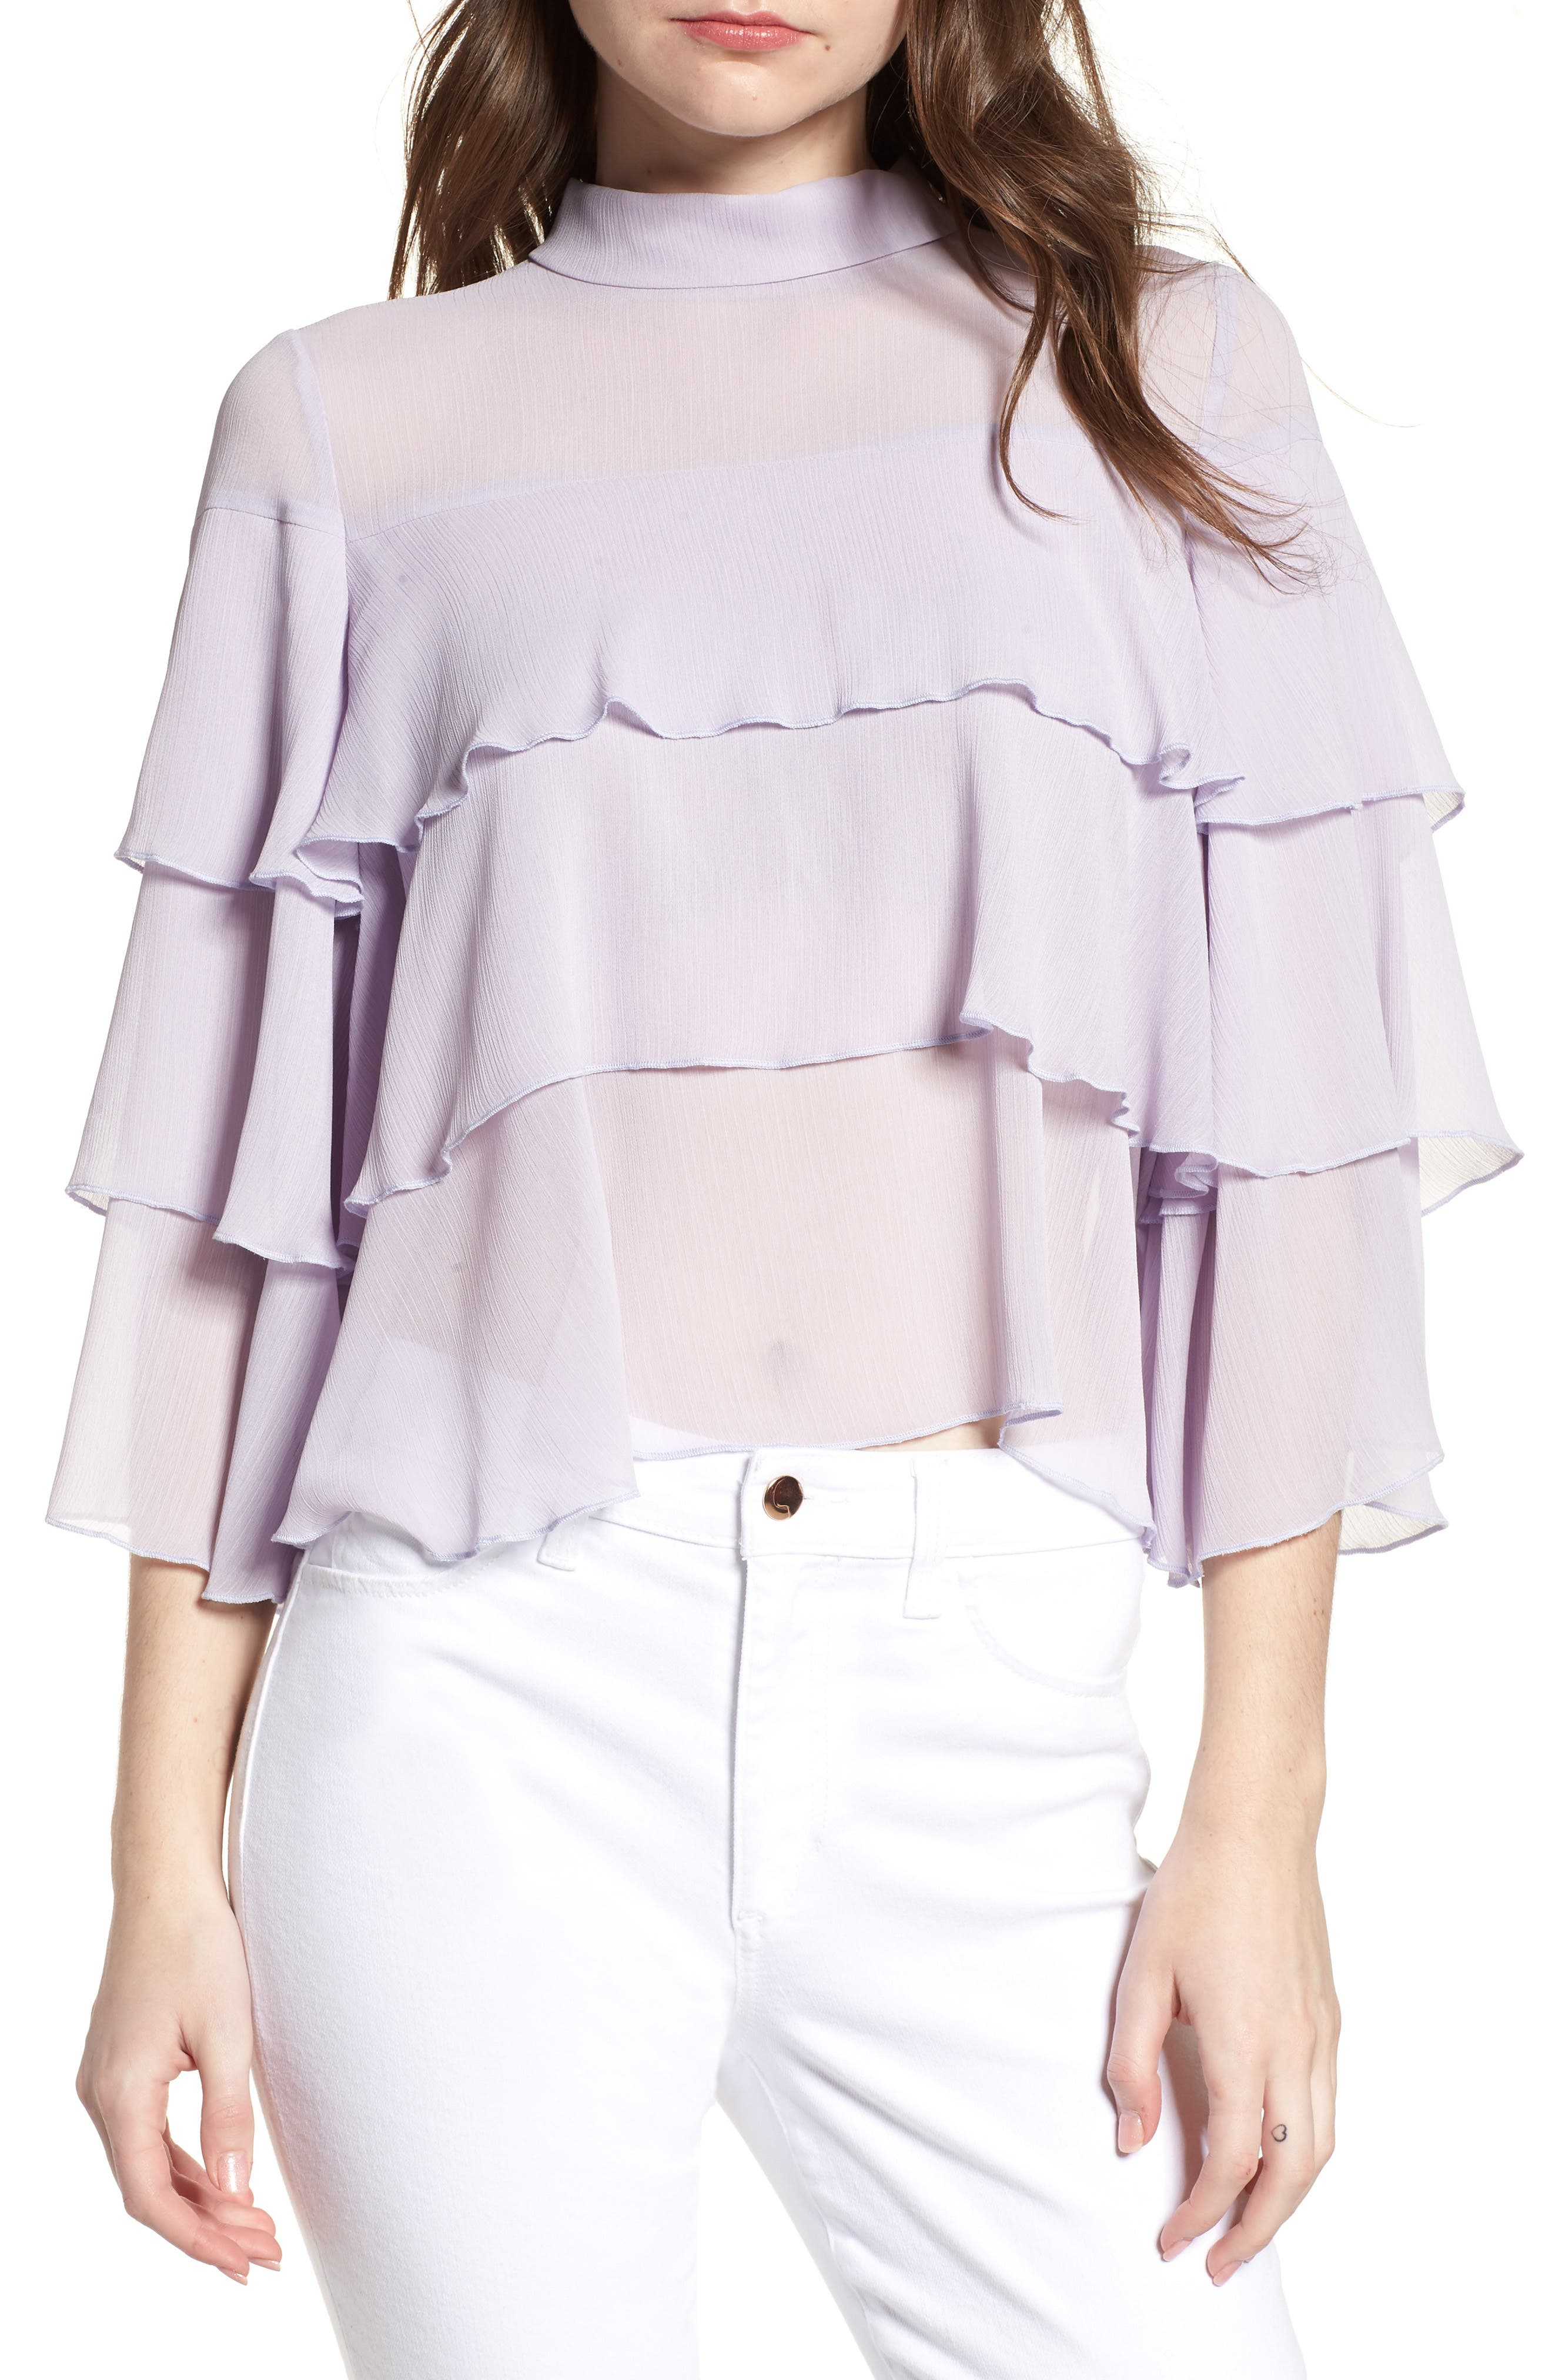 Bishop + Young Tiered Ruffle Blouse,                         Main,                         color, Lilac